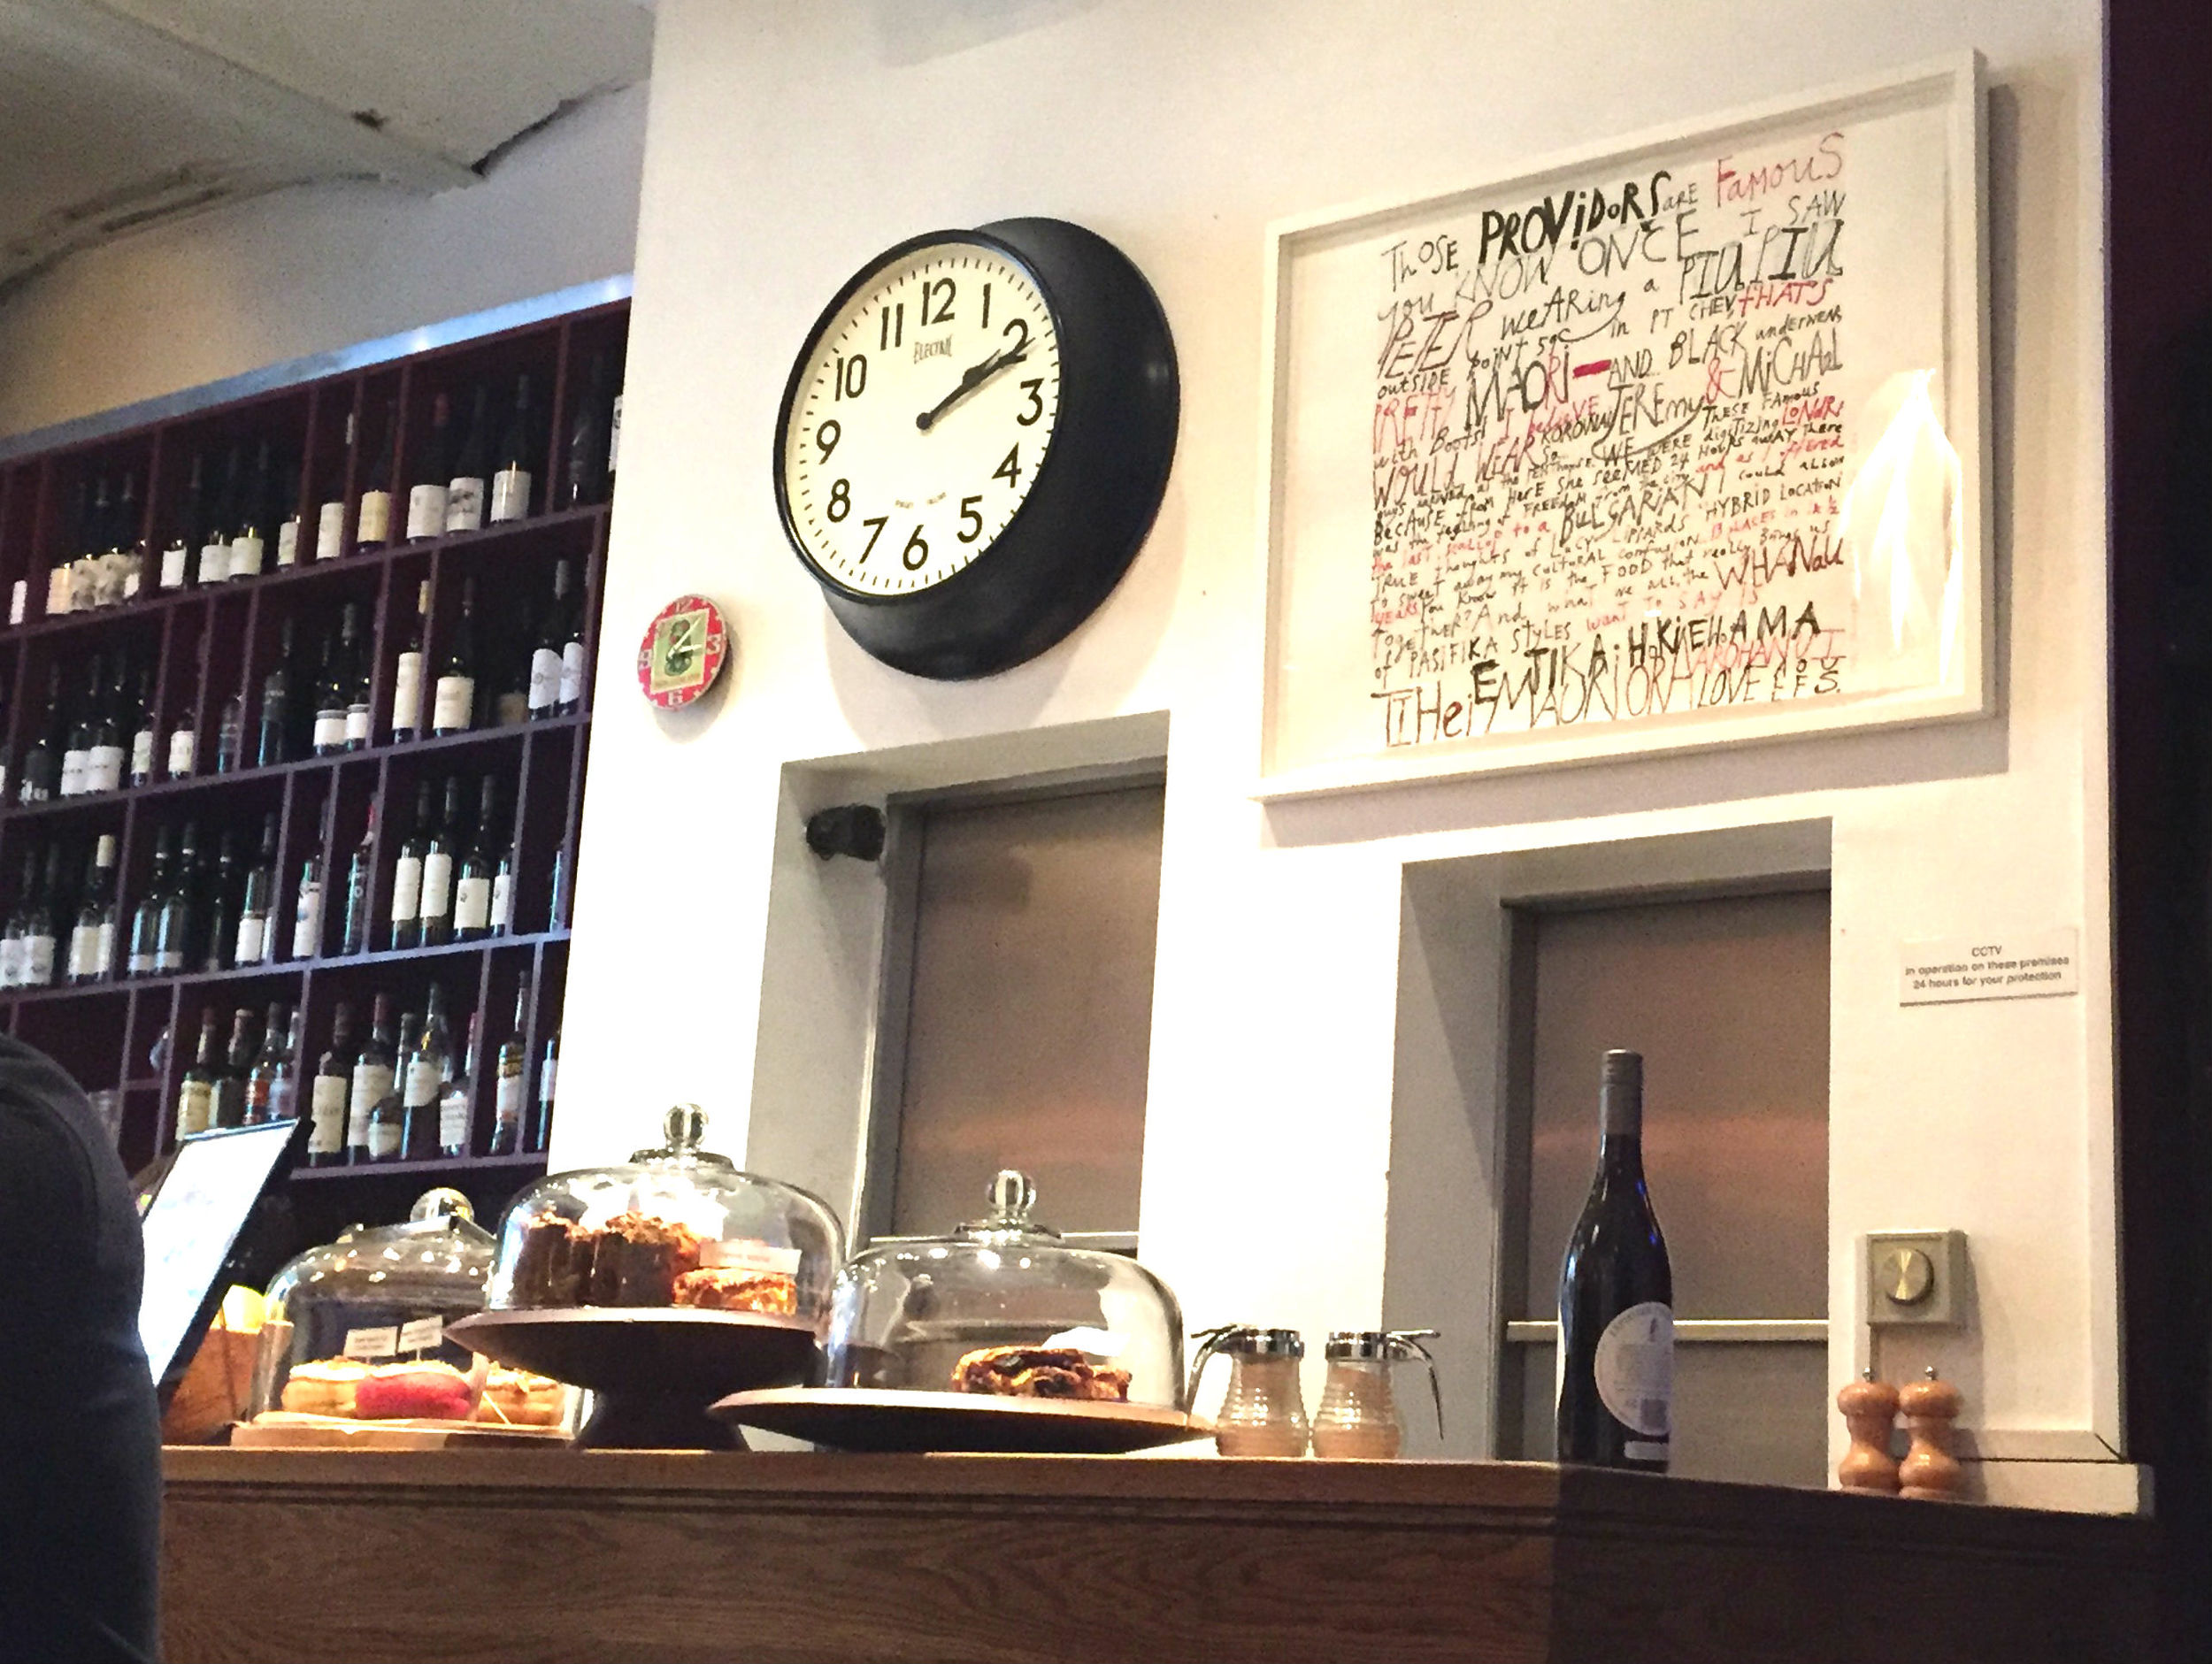 The Providores and Tapa Room